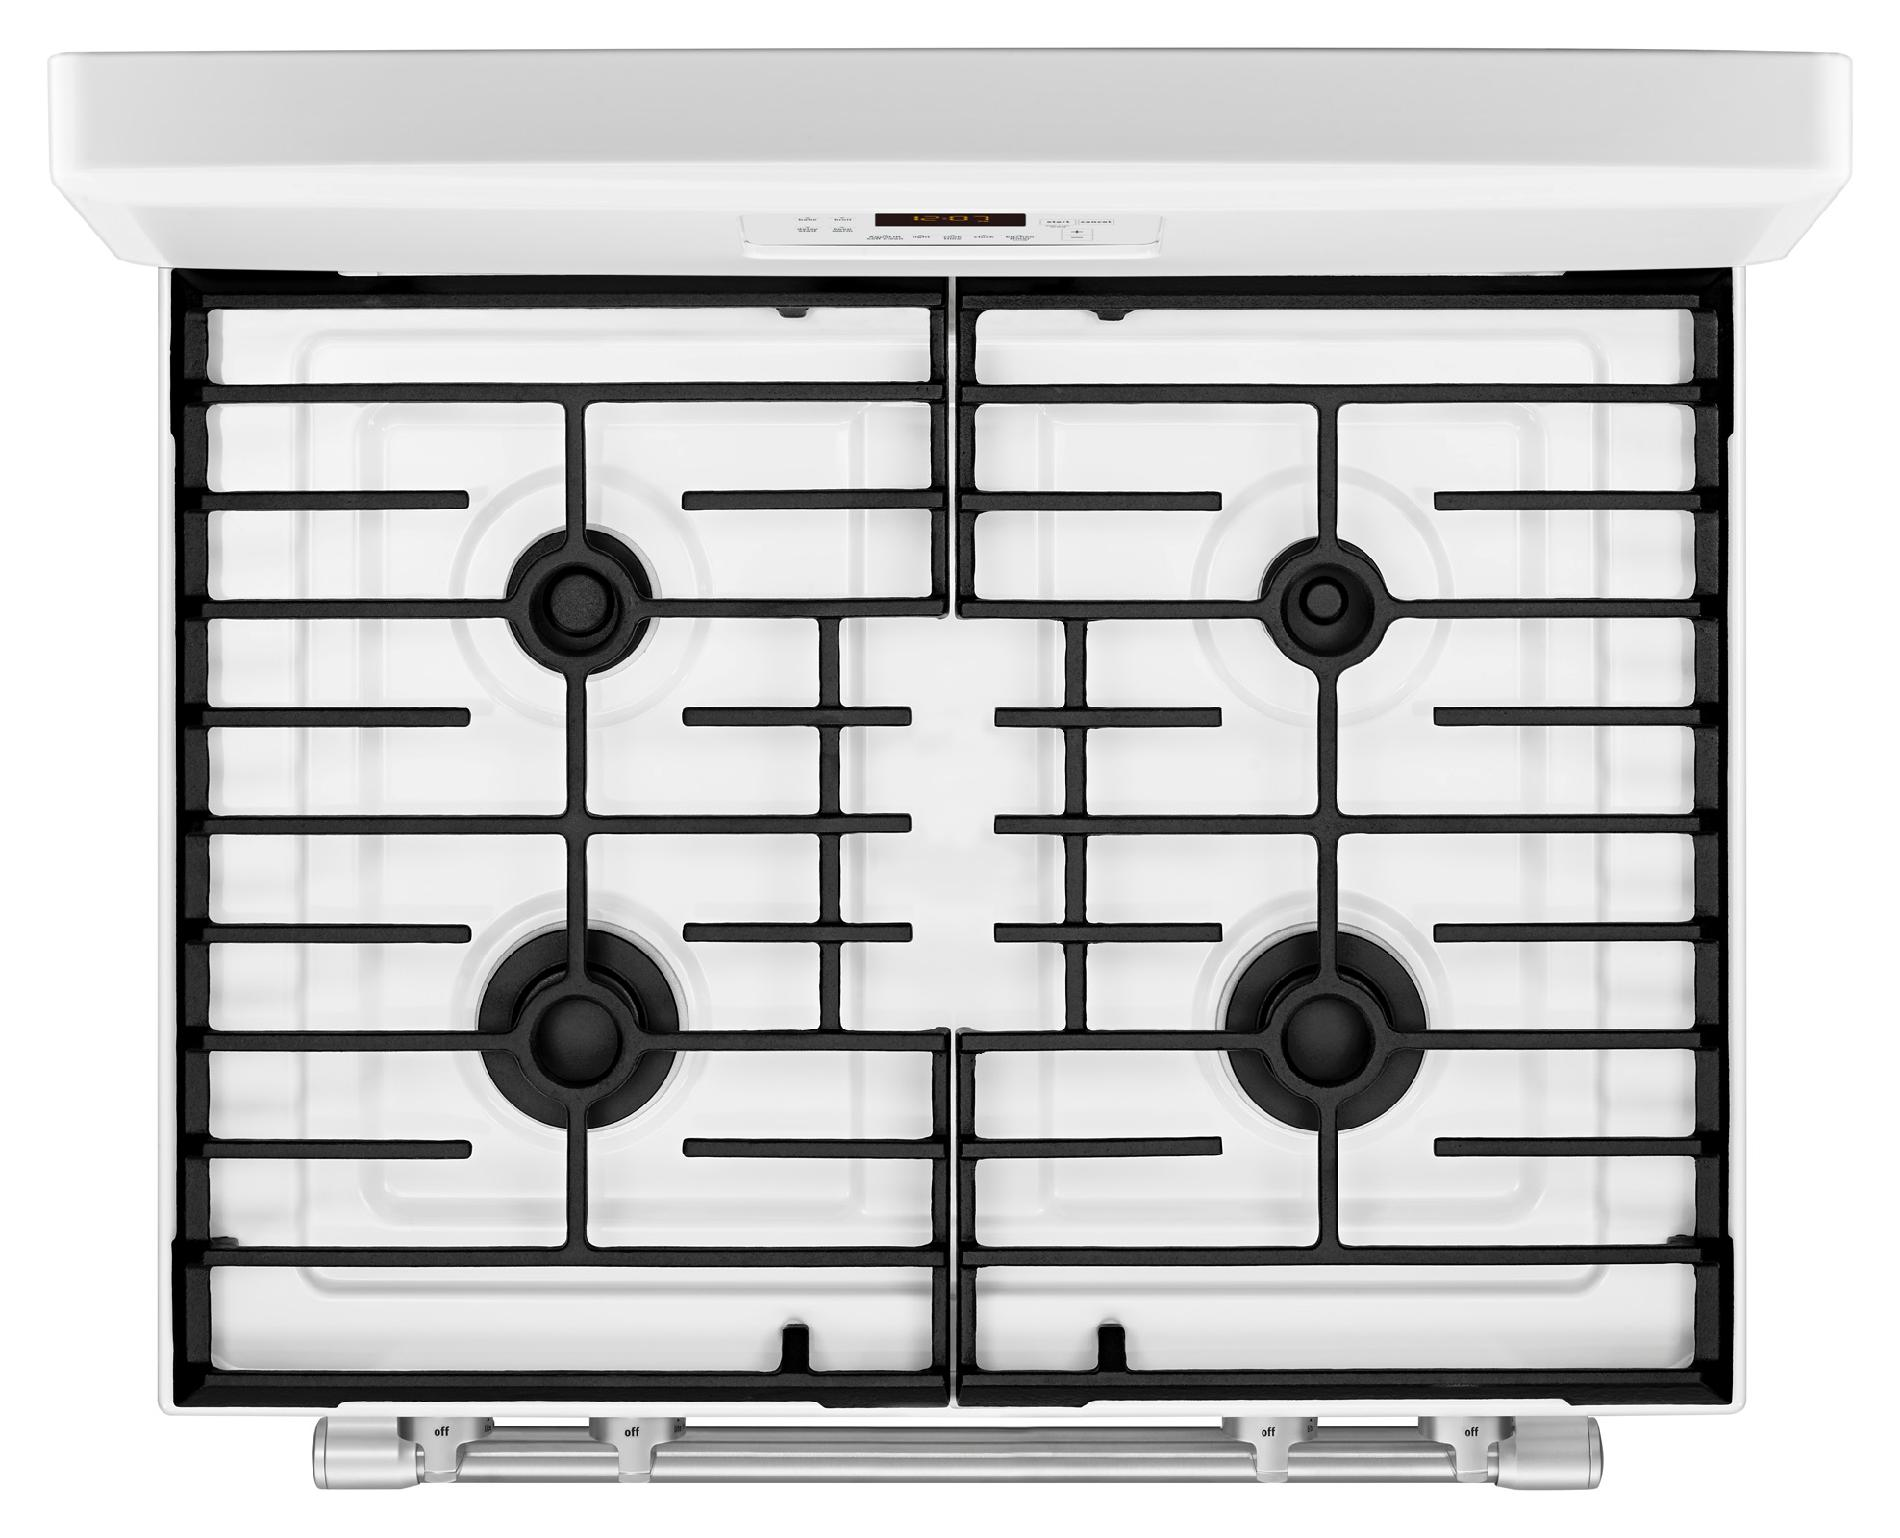 Maytag MGR8600DH 5.8 cu. ft. Gas Range w/ Power Burner - White w/ Stainless Handle